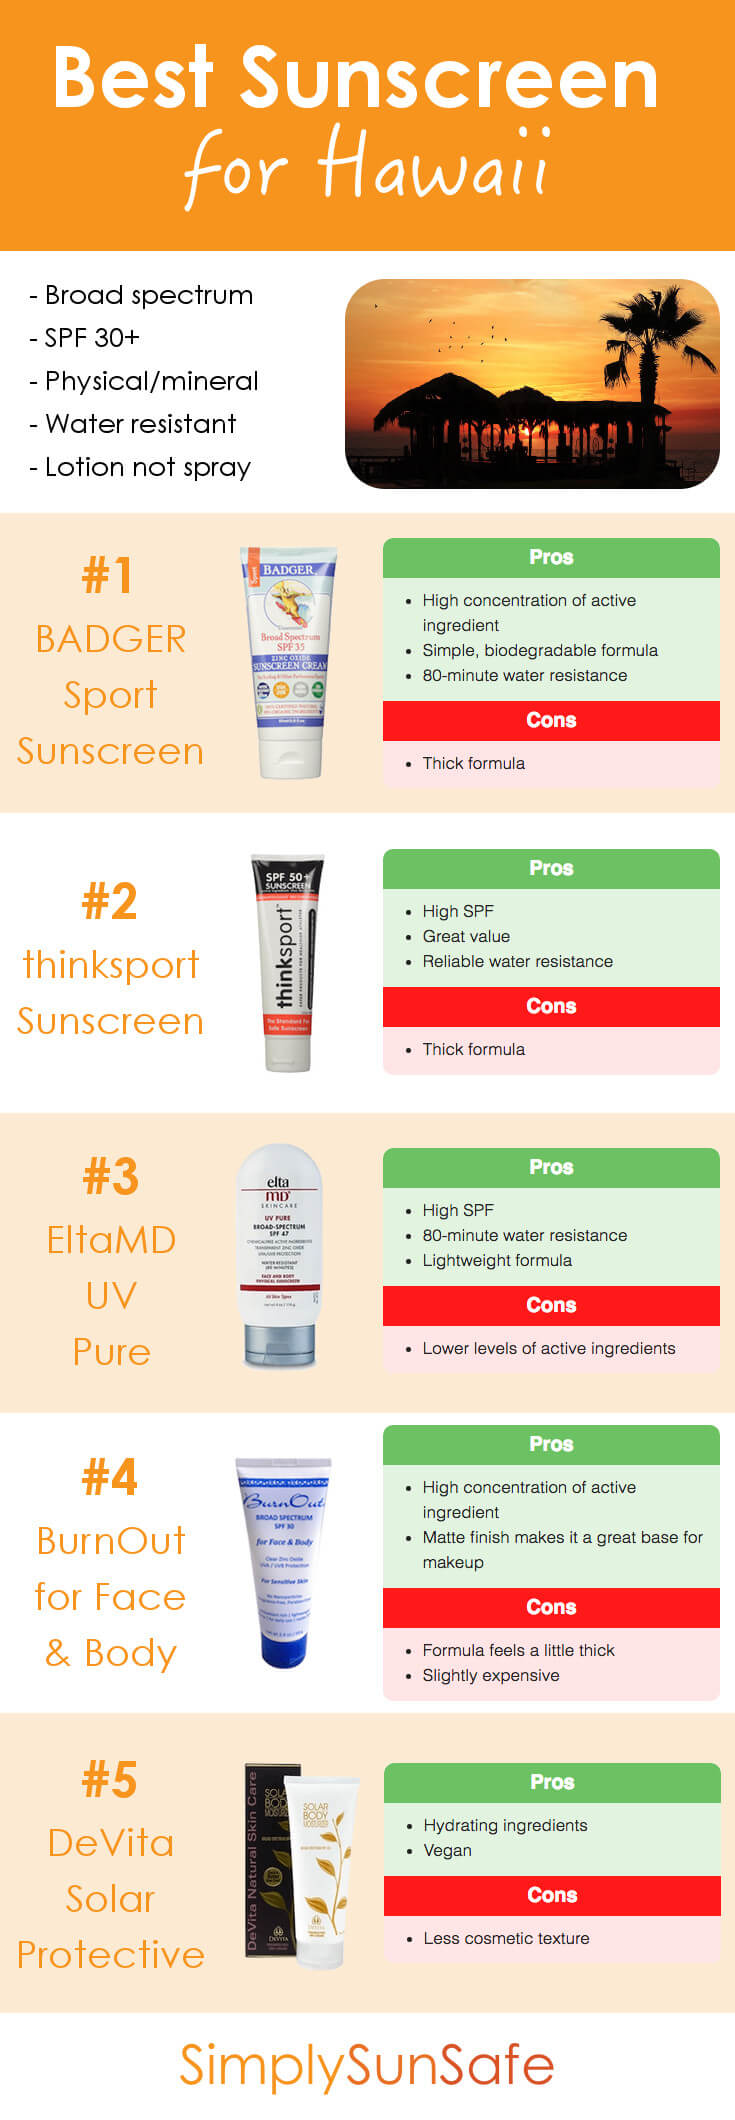 Best Sunscreen for Hawaii Pinterest